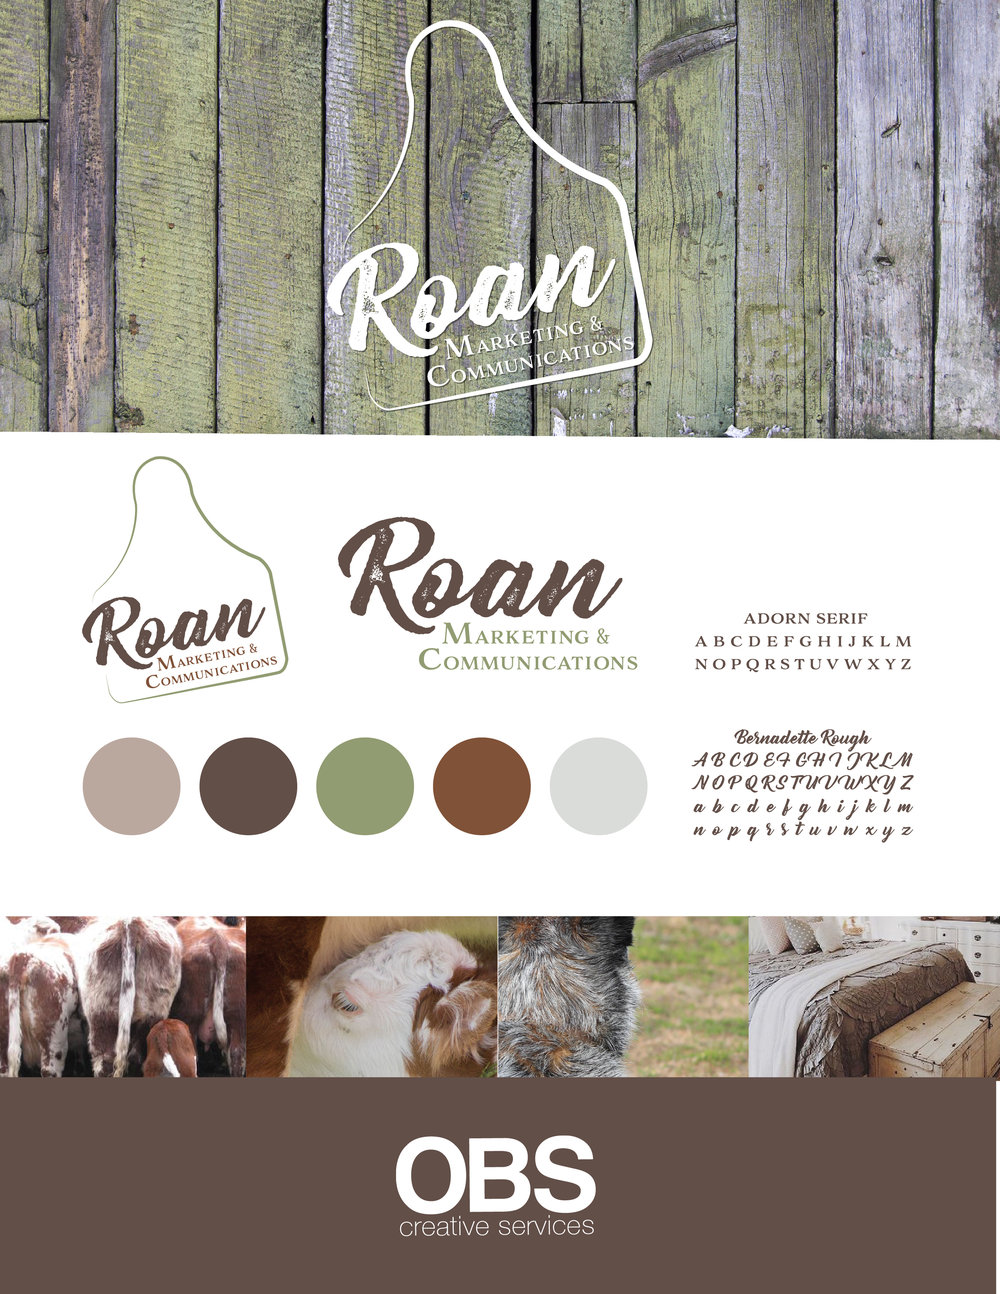 Roan Marketing & Communications.jpg